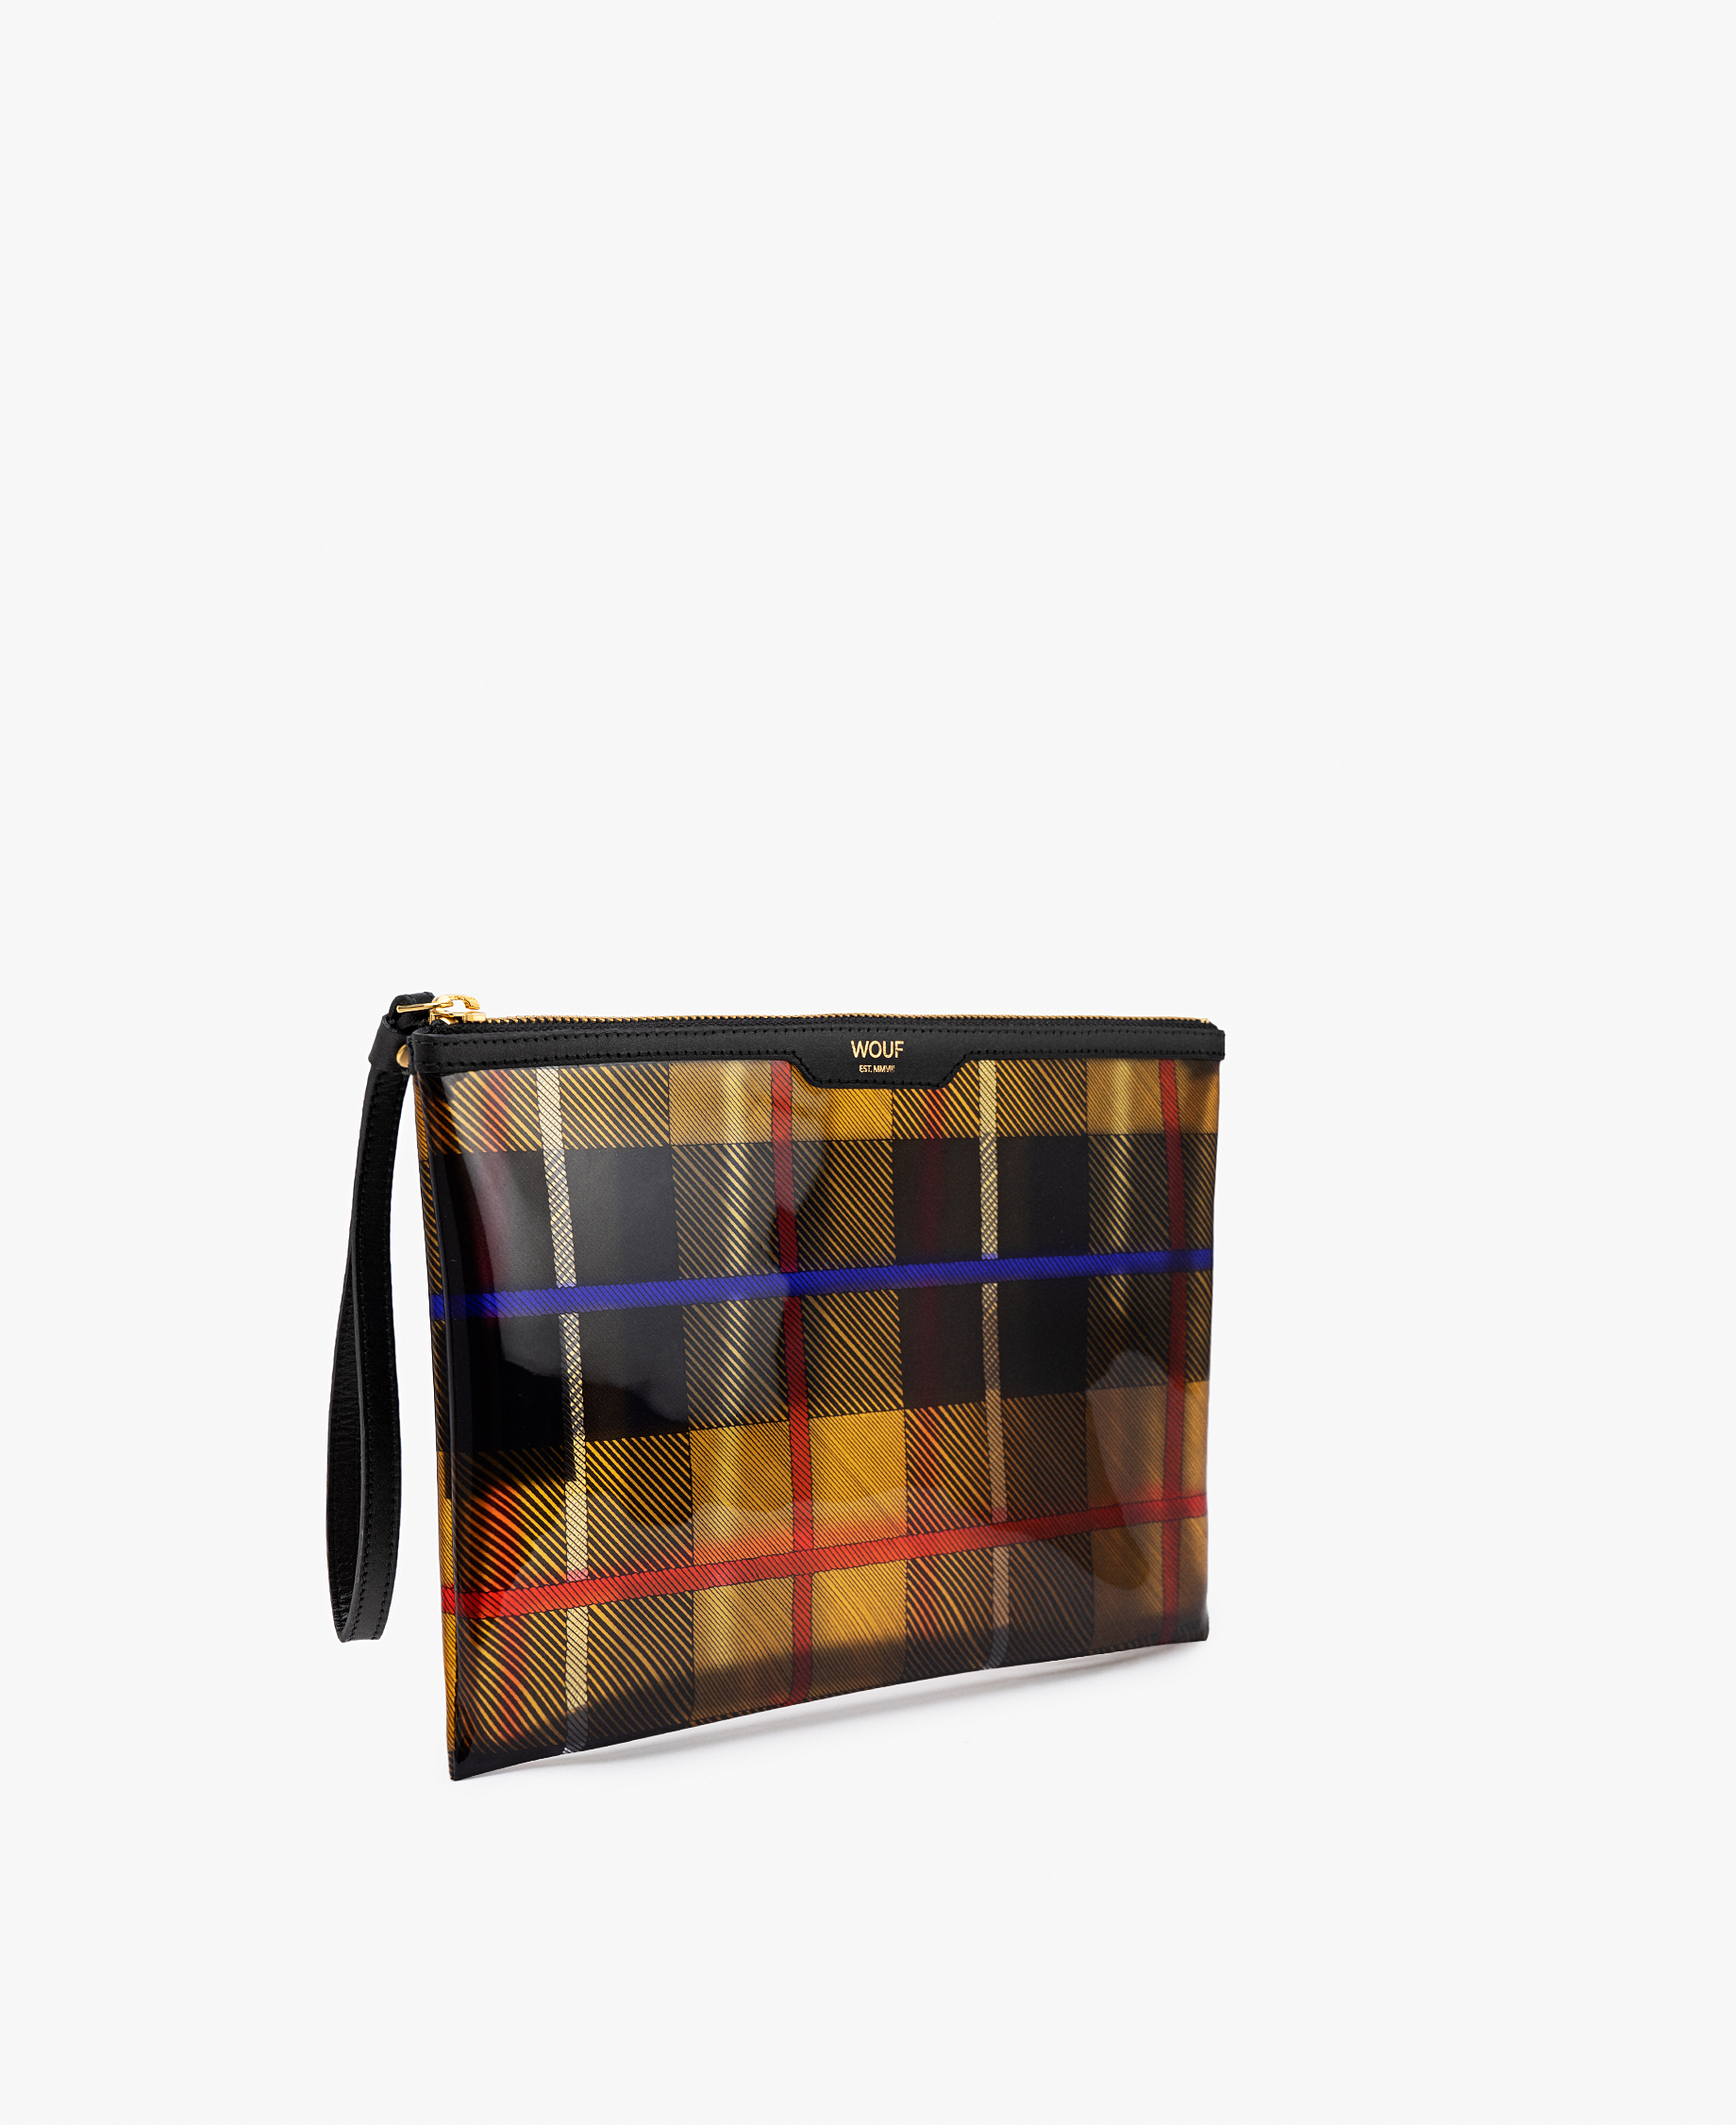 vinyl Evening clutch bag